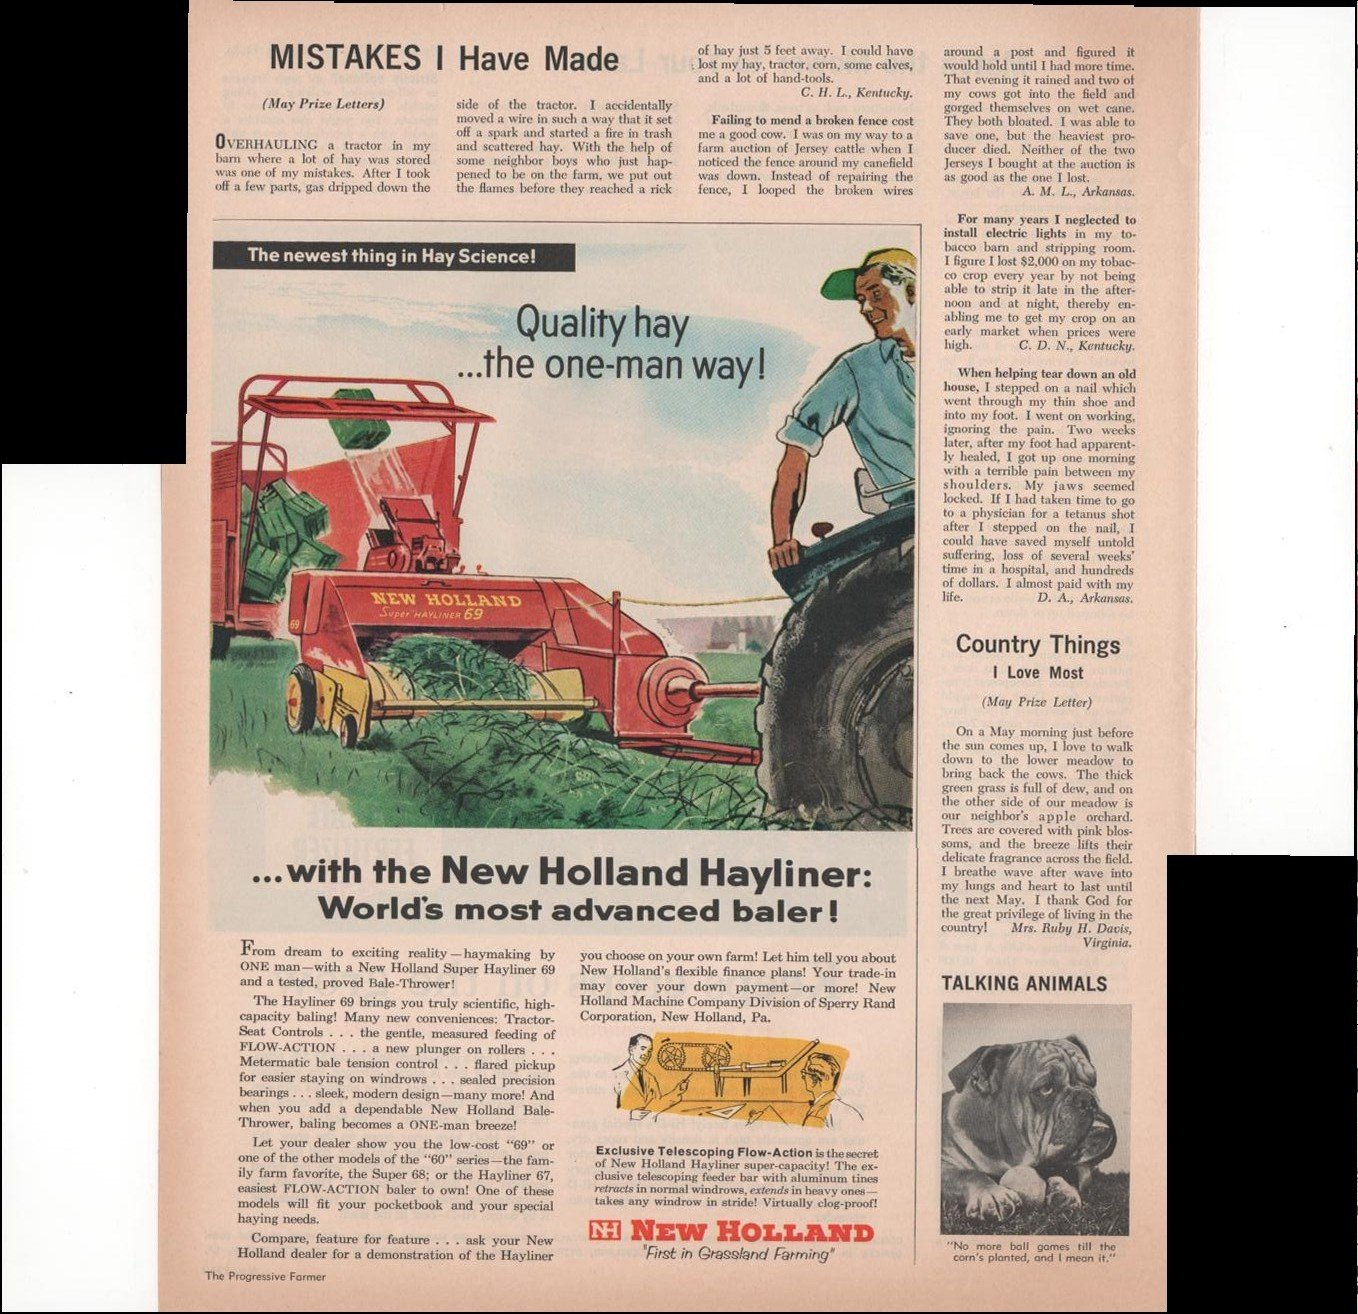 New Holland First In Grassland Farming The Newest Thing Repairing Aluminum Wiring Hay Science Quality Baler 1960 Vintage Antique Advertisement Prints Posters